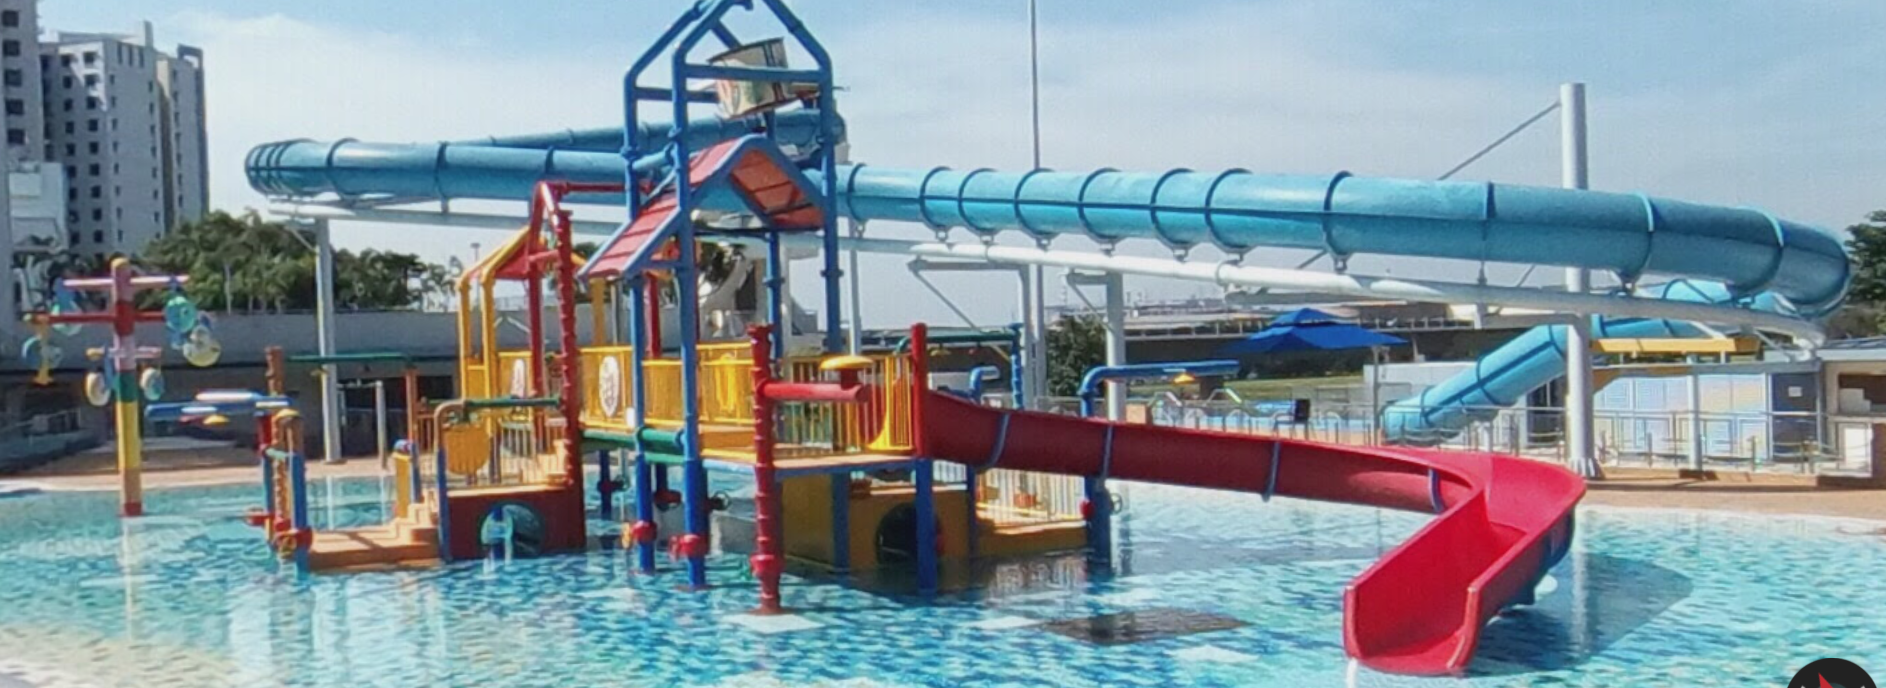 Jurong West Aquatic Centre | Kidslah